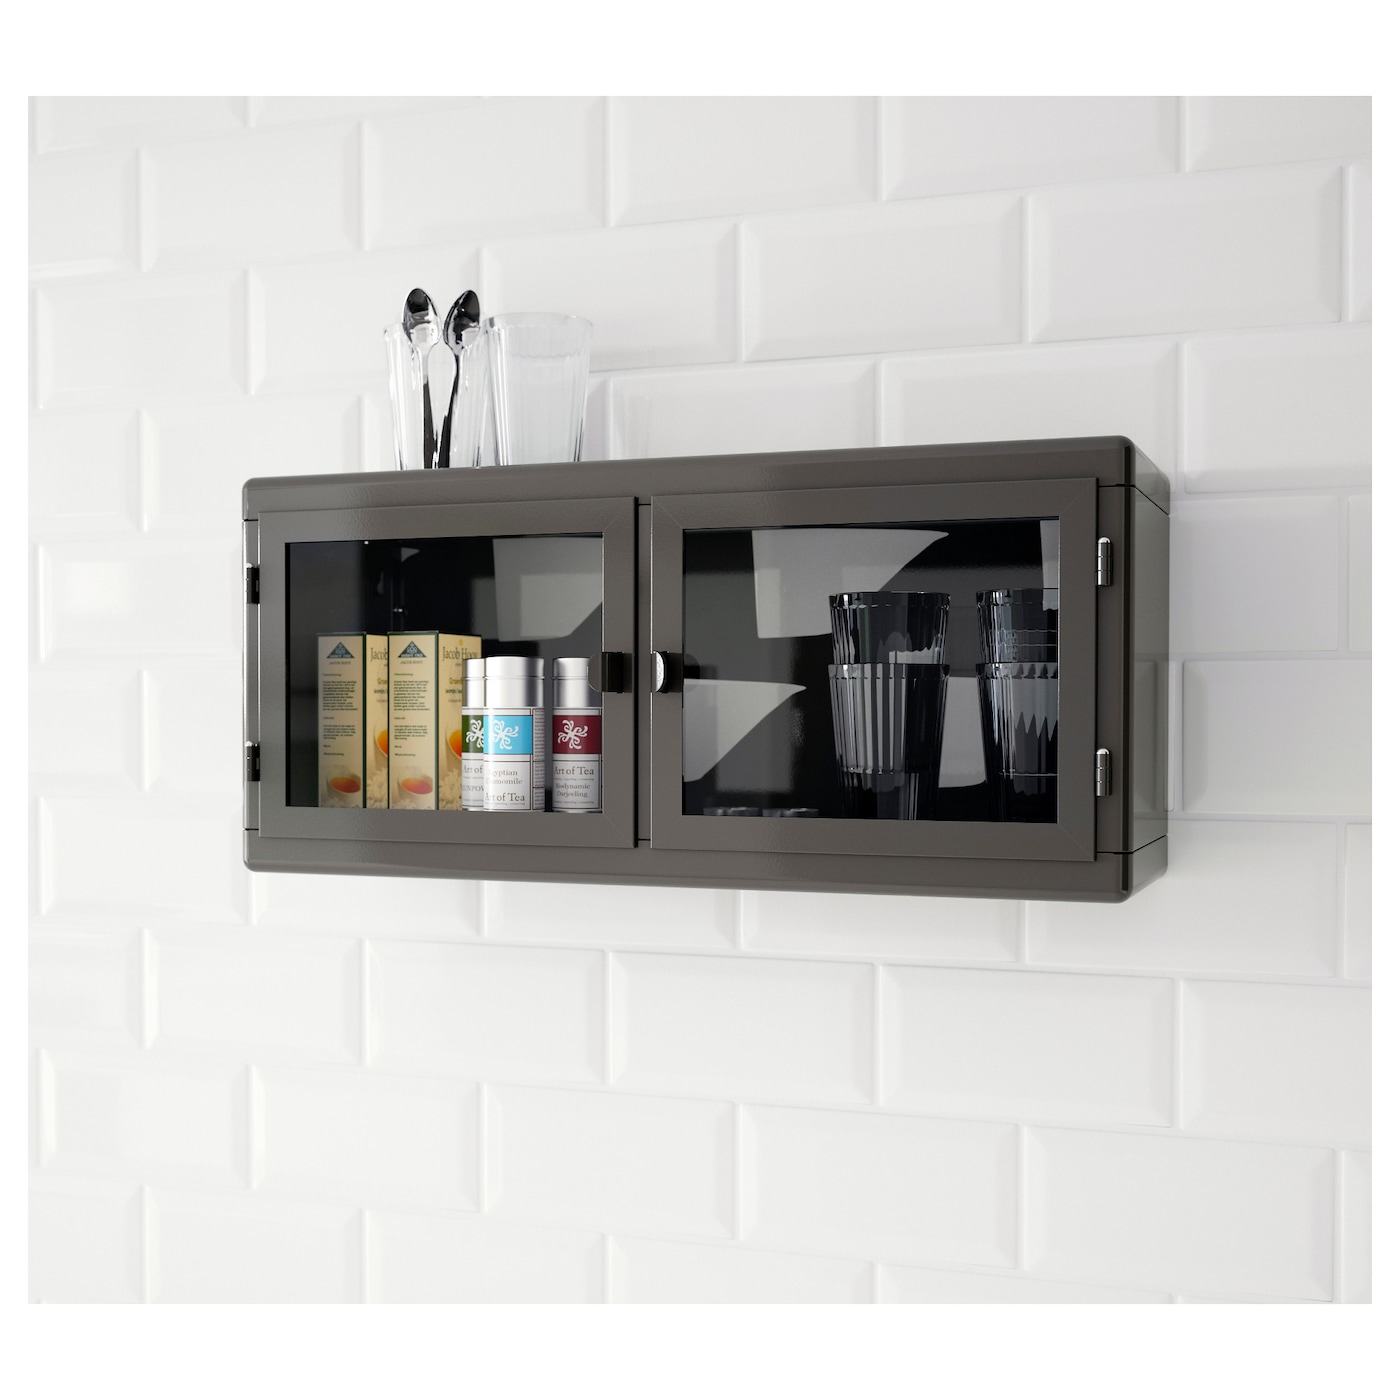 R skog wall cabinet dark grey glass 60x27 cm ikea for Glass kitchen wall units